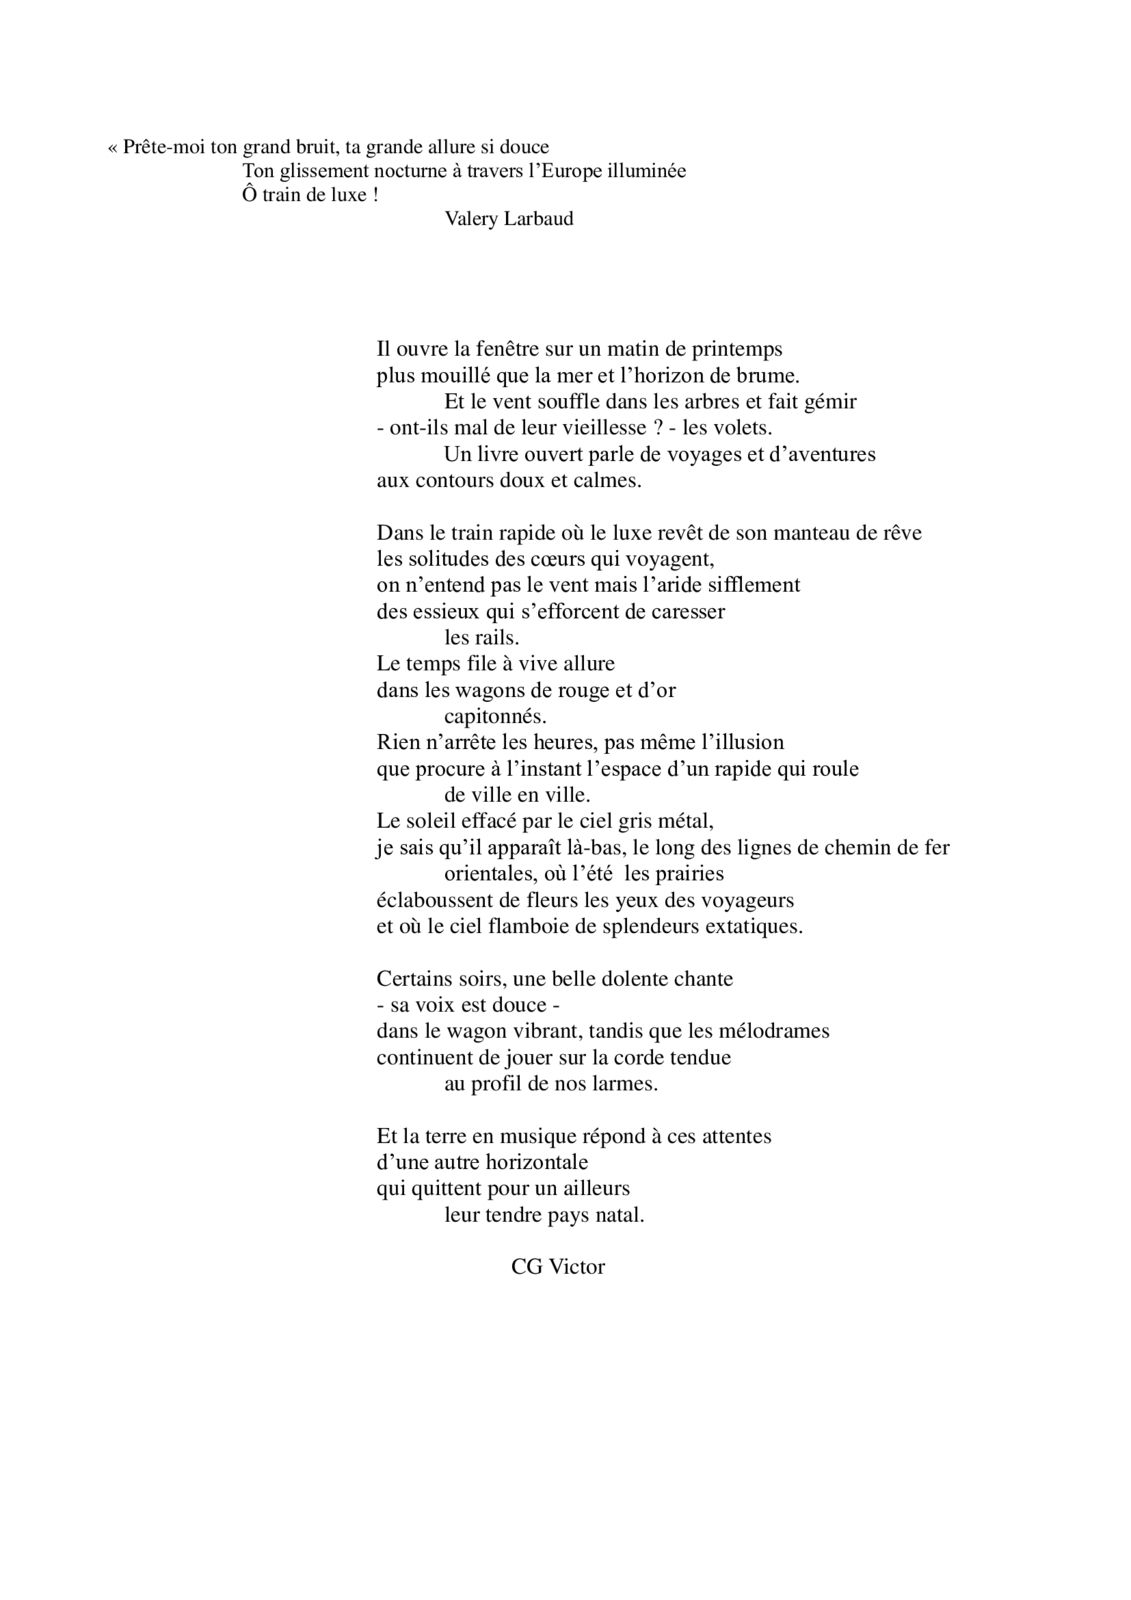 LE CAPITAL DES MOTS - CHANTAL GODÉ-VICTOR